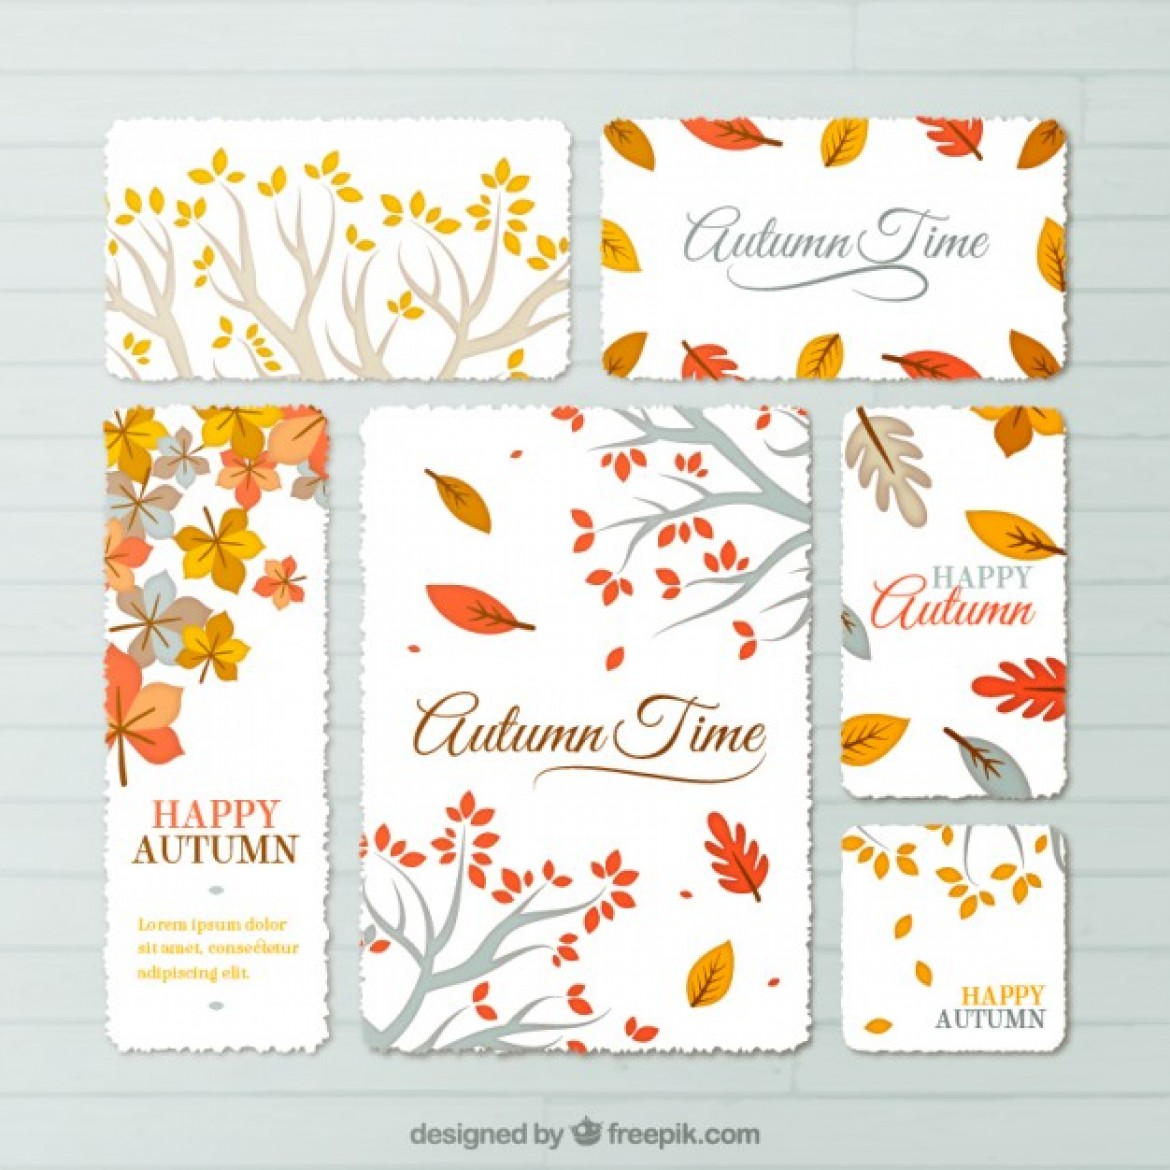 wpid-autumn-time-stationery_23-2147520977-1170x1170